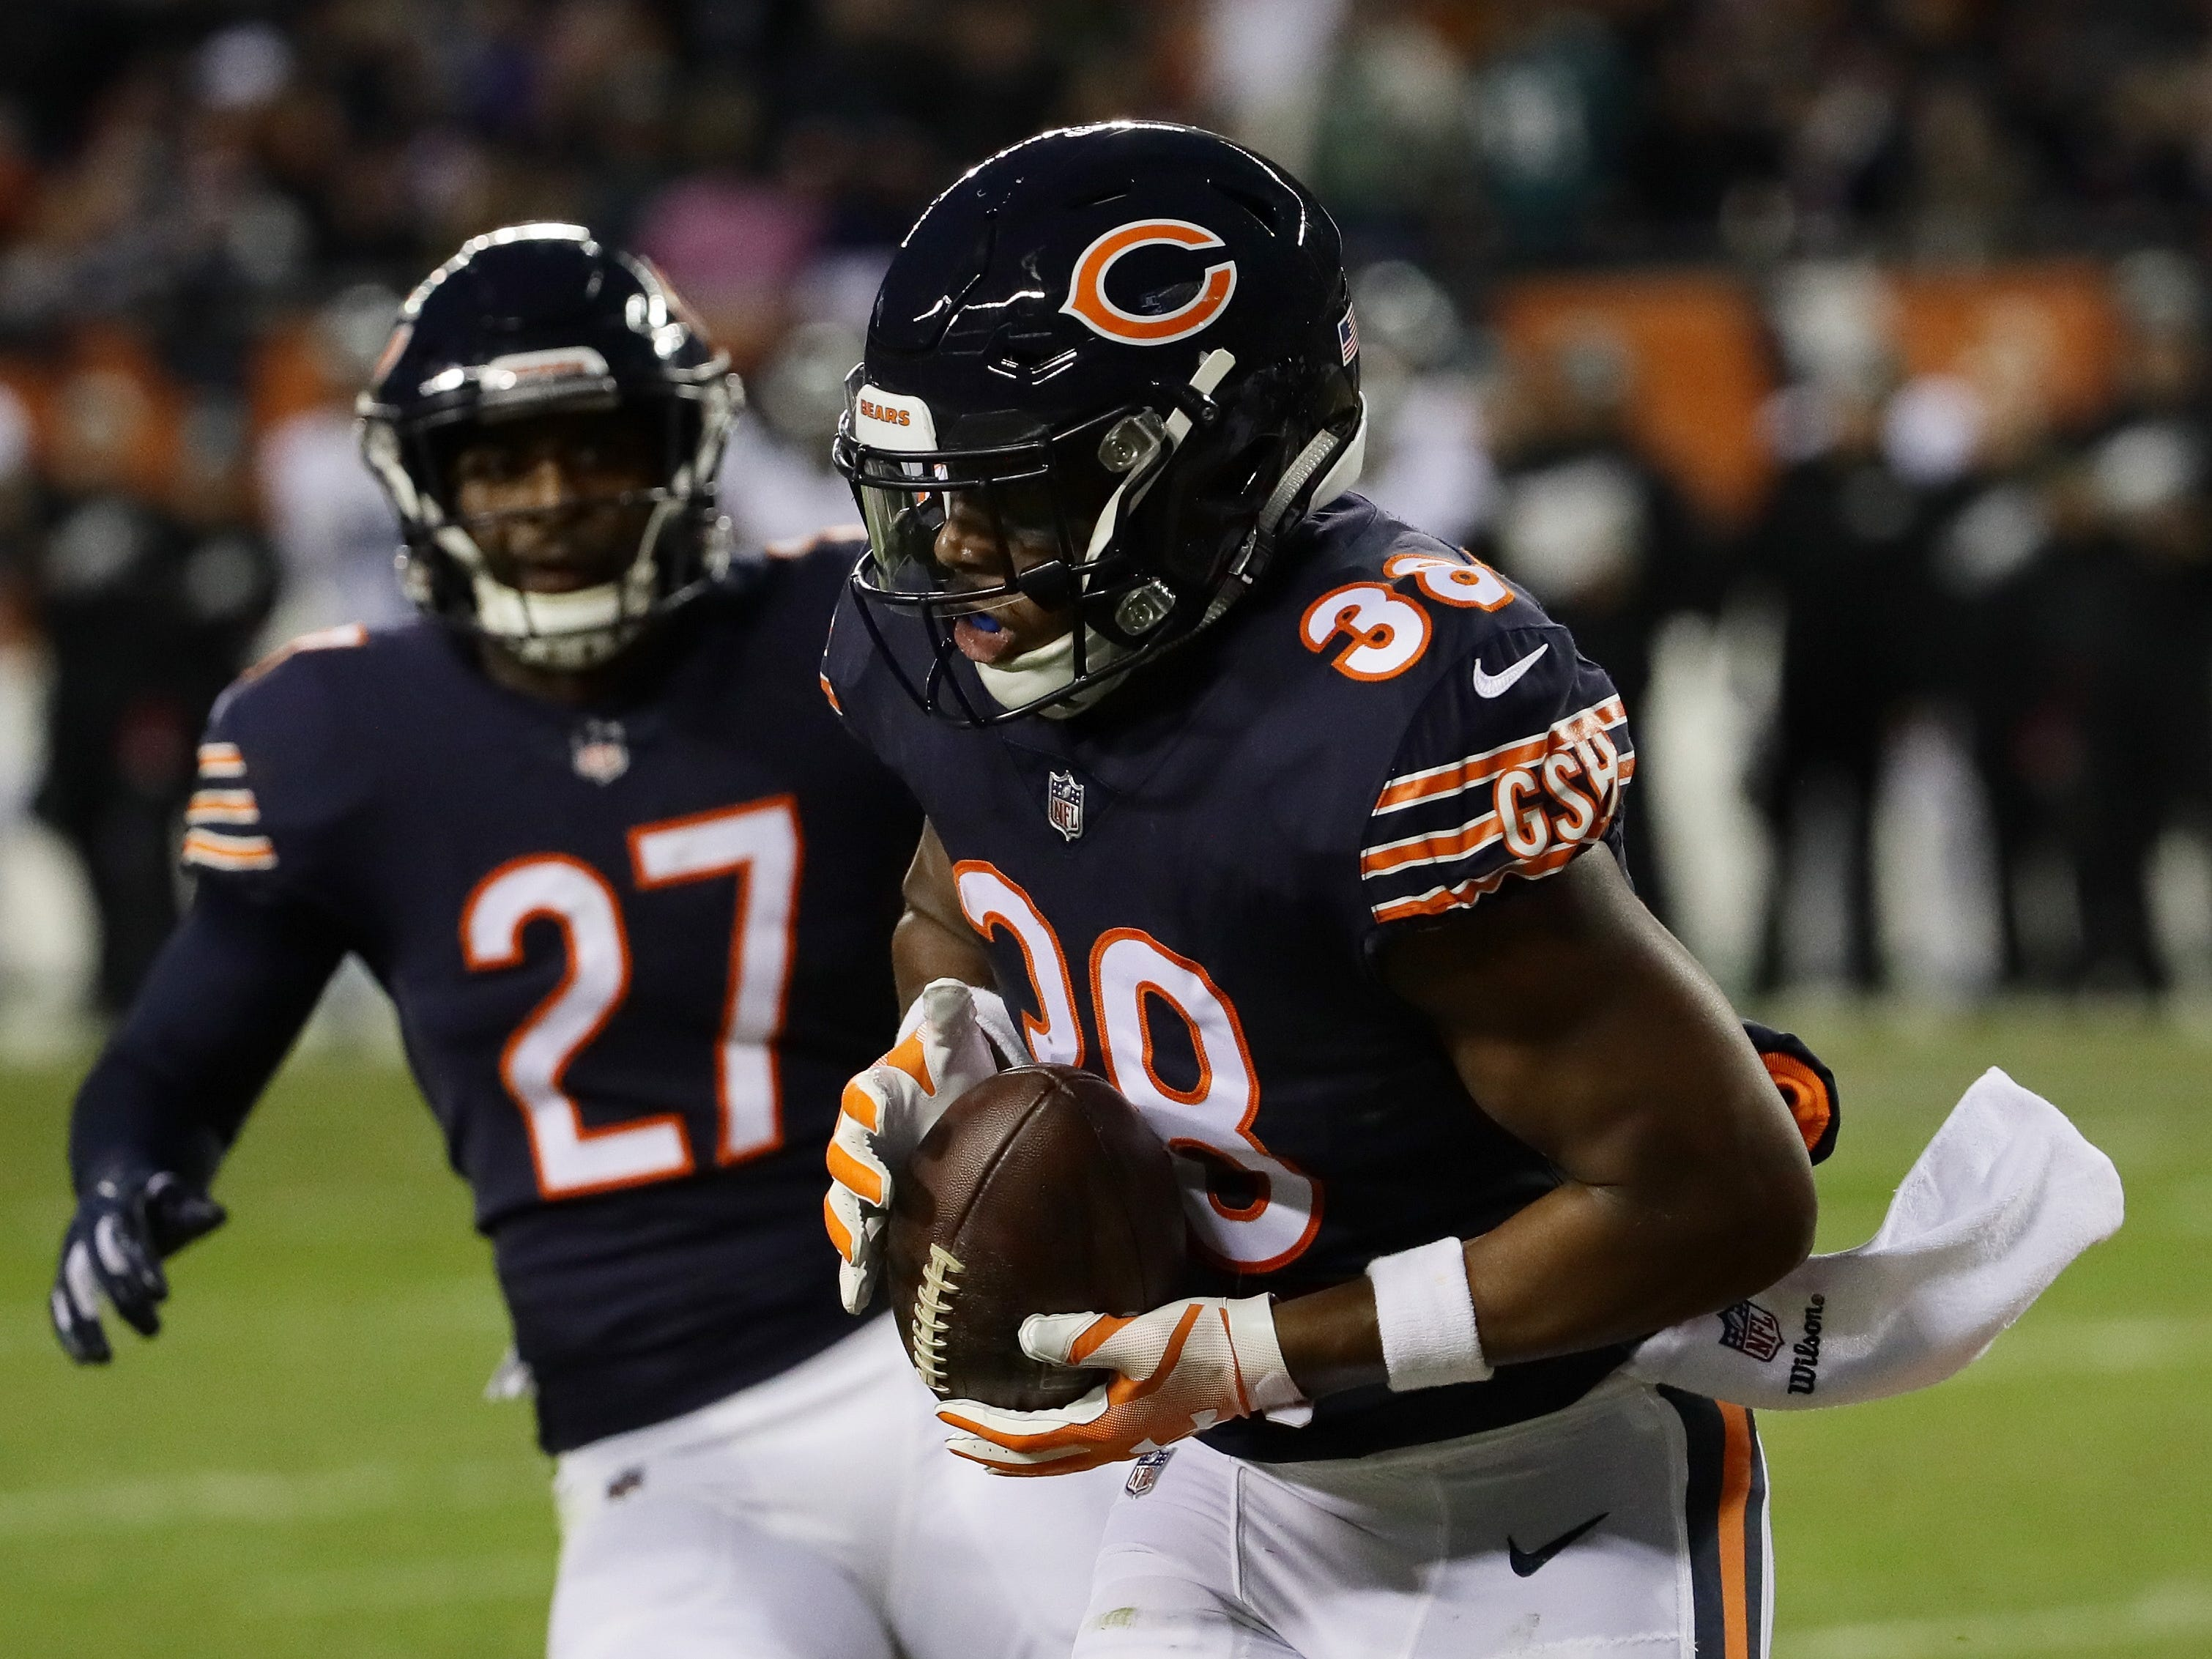 Adrian Amos, S, Chicago: Pro Football Focus loves Amos, grading him as one of their top 10 safeties the past two seasons. A big, physical hitter, Amos doesn't miss a lot of tackles, but he also has impressive range in coverage. He's one of those players who is not great at any one thing, but solid at just about everything.